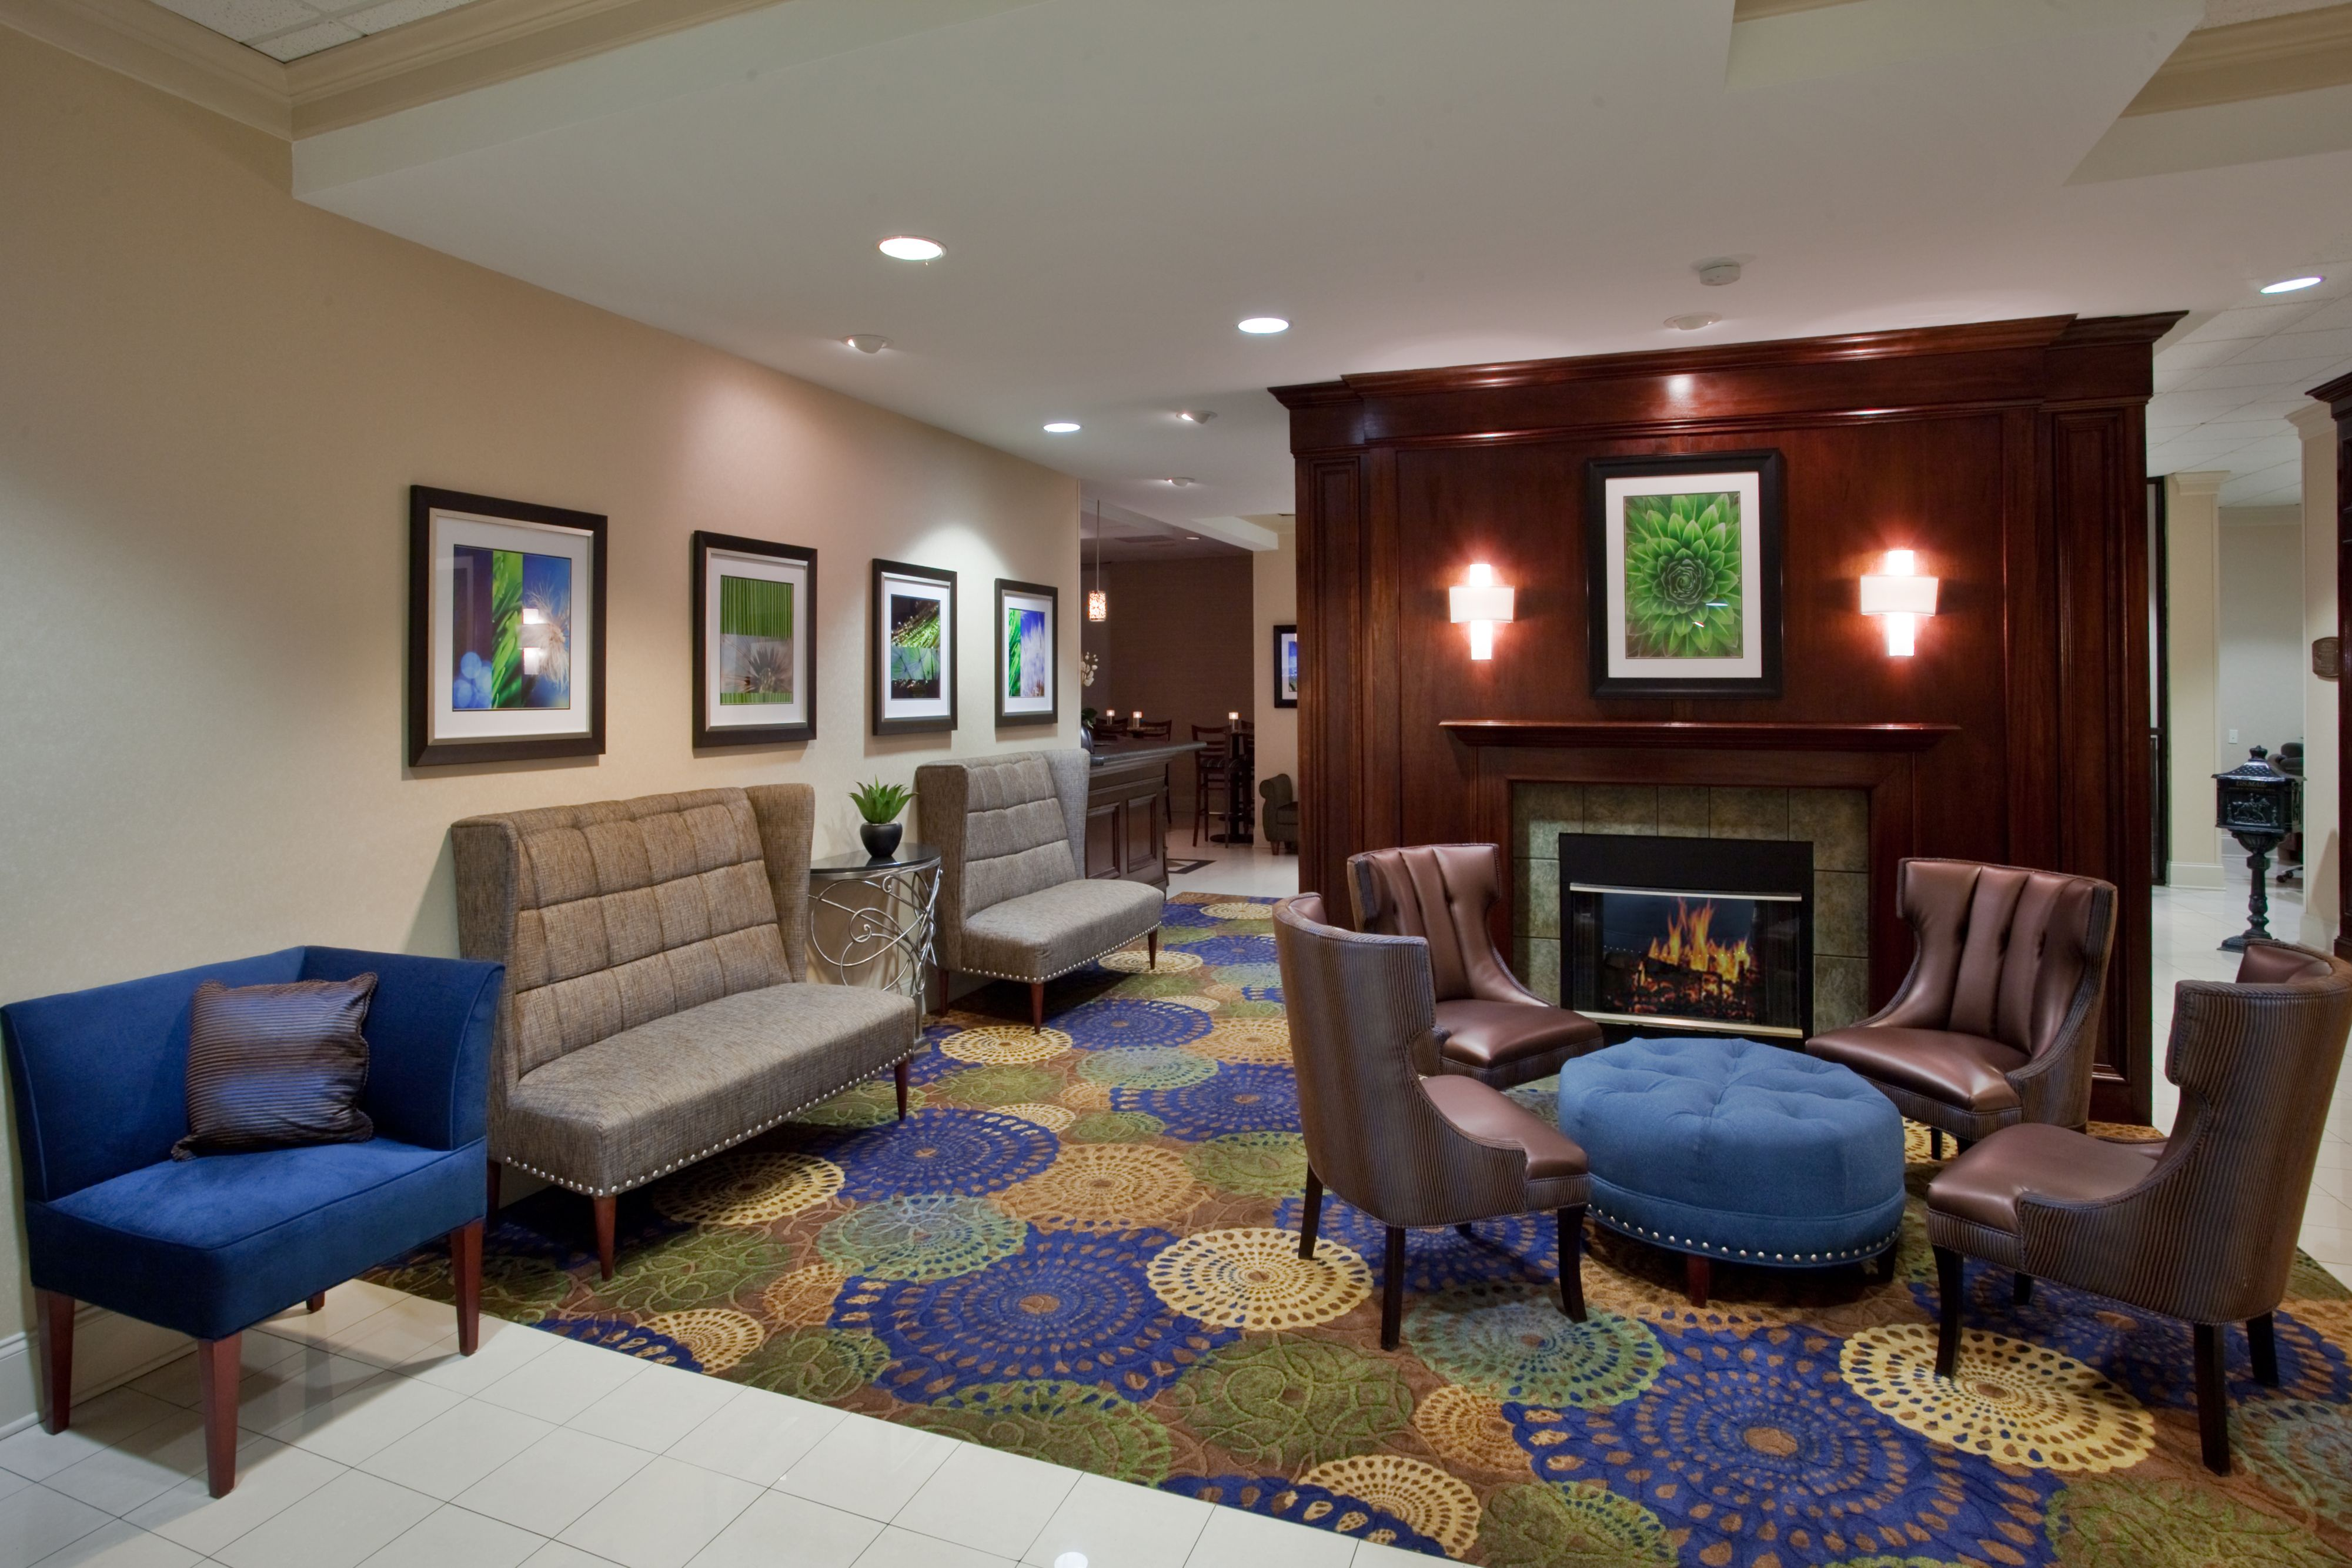 Holiday Inn Raleigh North - Midtown image 3